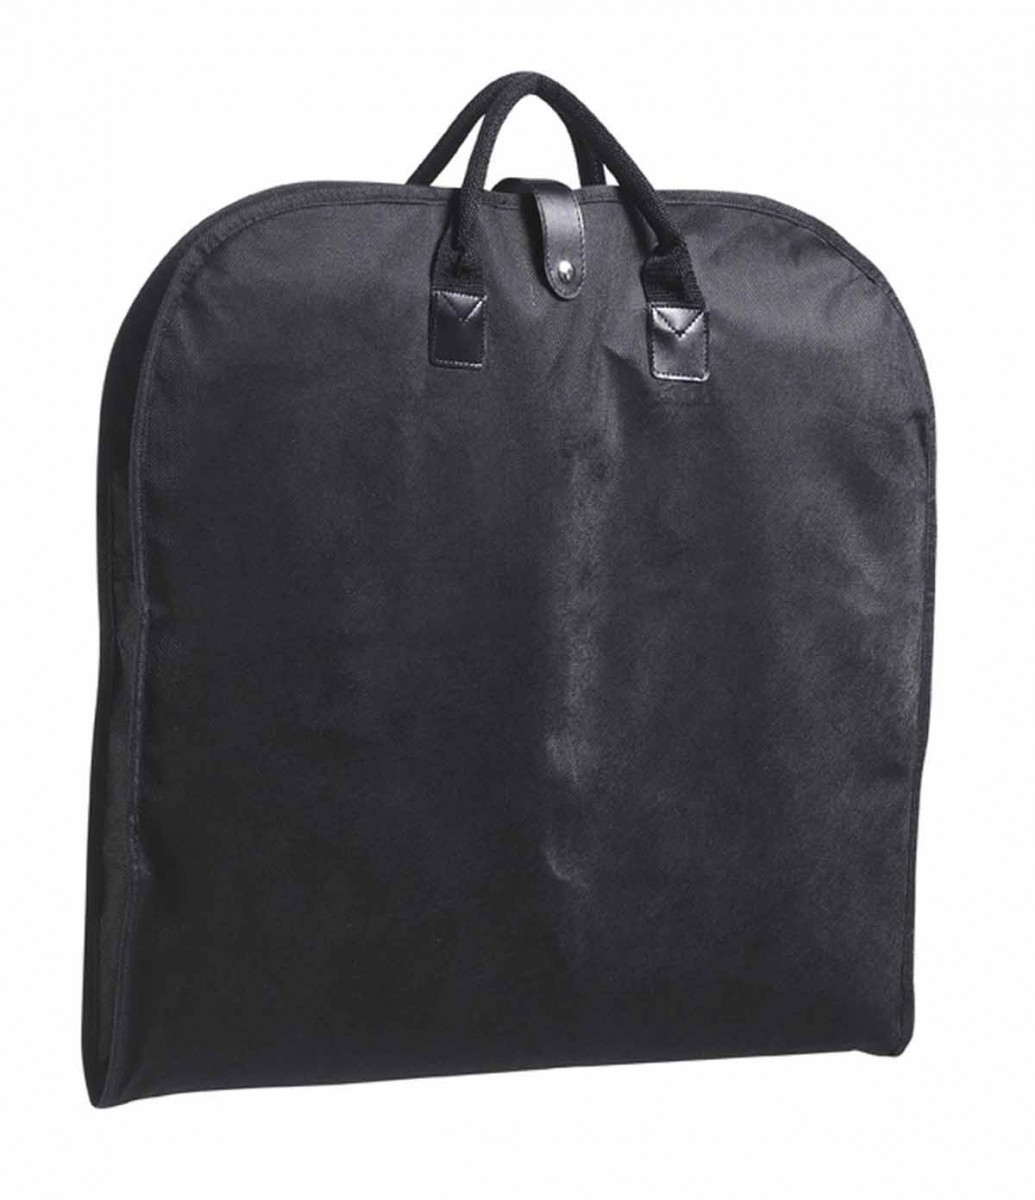 Sac housse de voyage v tements co premier 74300 for Housse transport costume